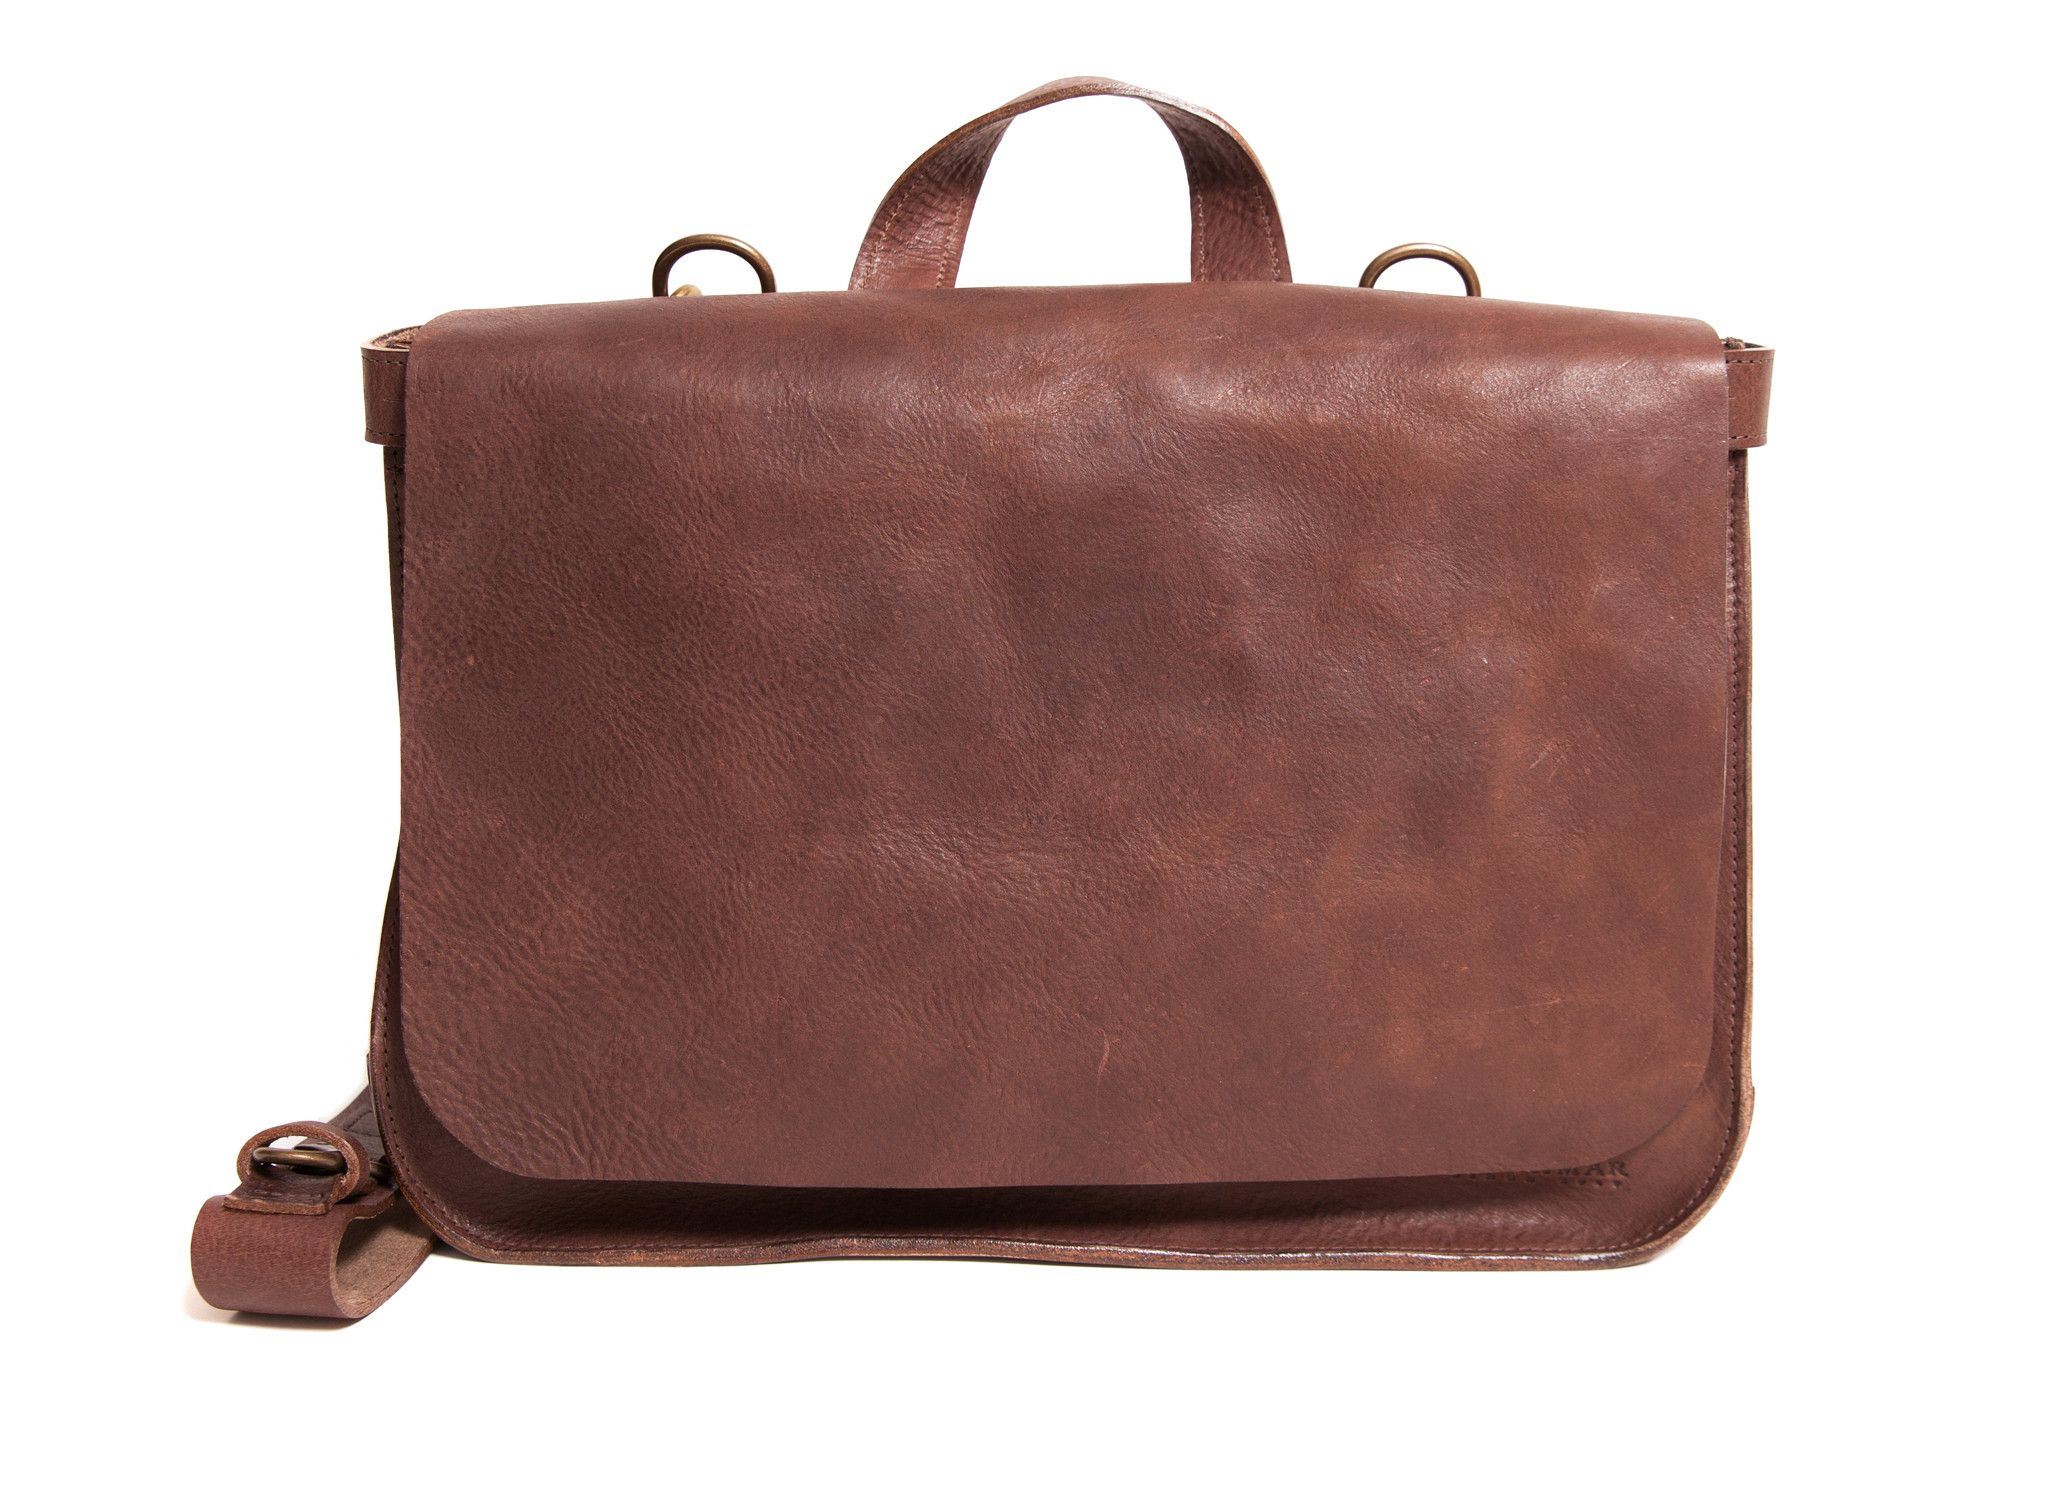 """Vegetable-tanned leather flapover messenger bag. Removable, adjustable shoulder strap allows the bag to be worn as a messenger or backpack. Fits most 15"""" laptops."""